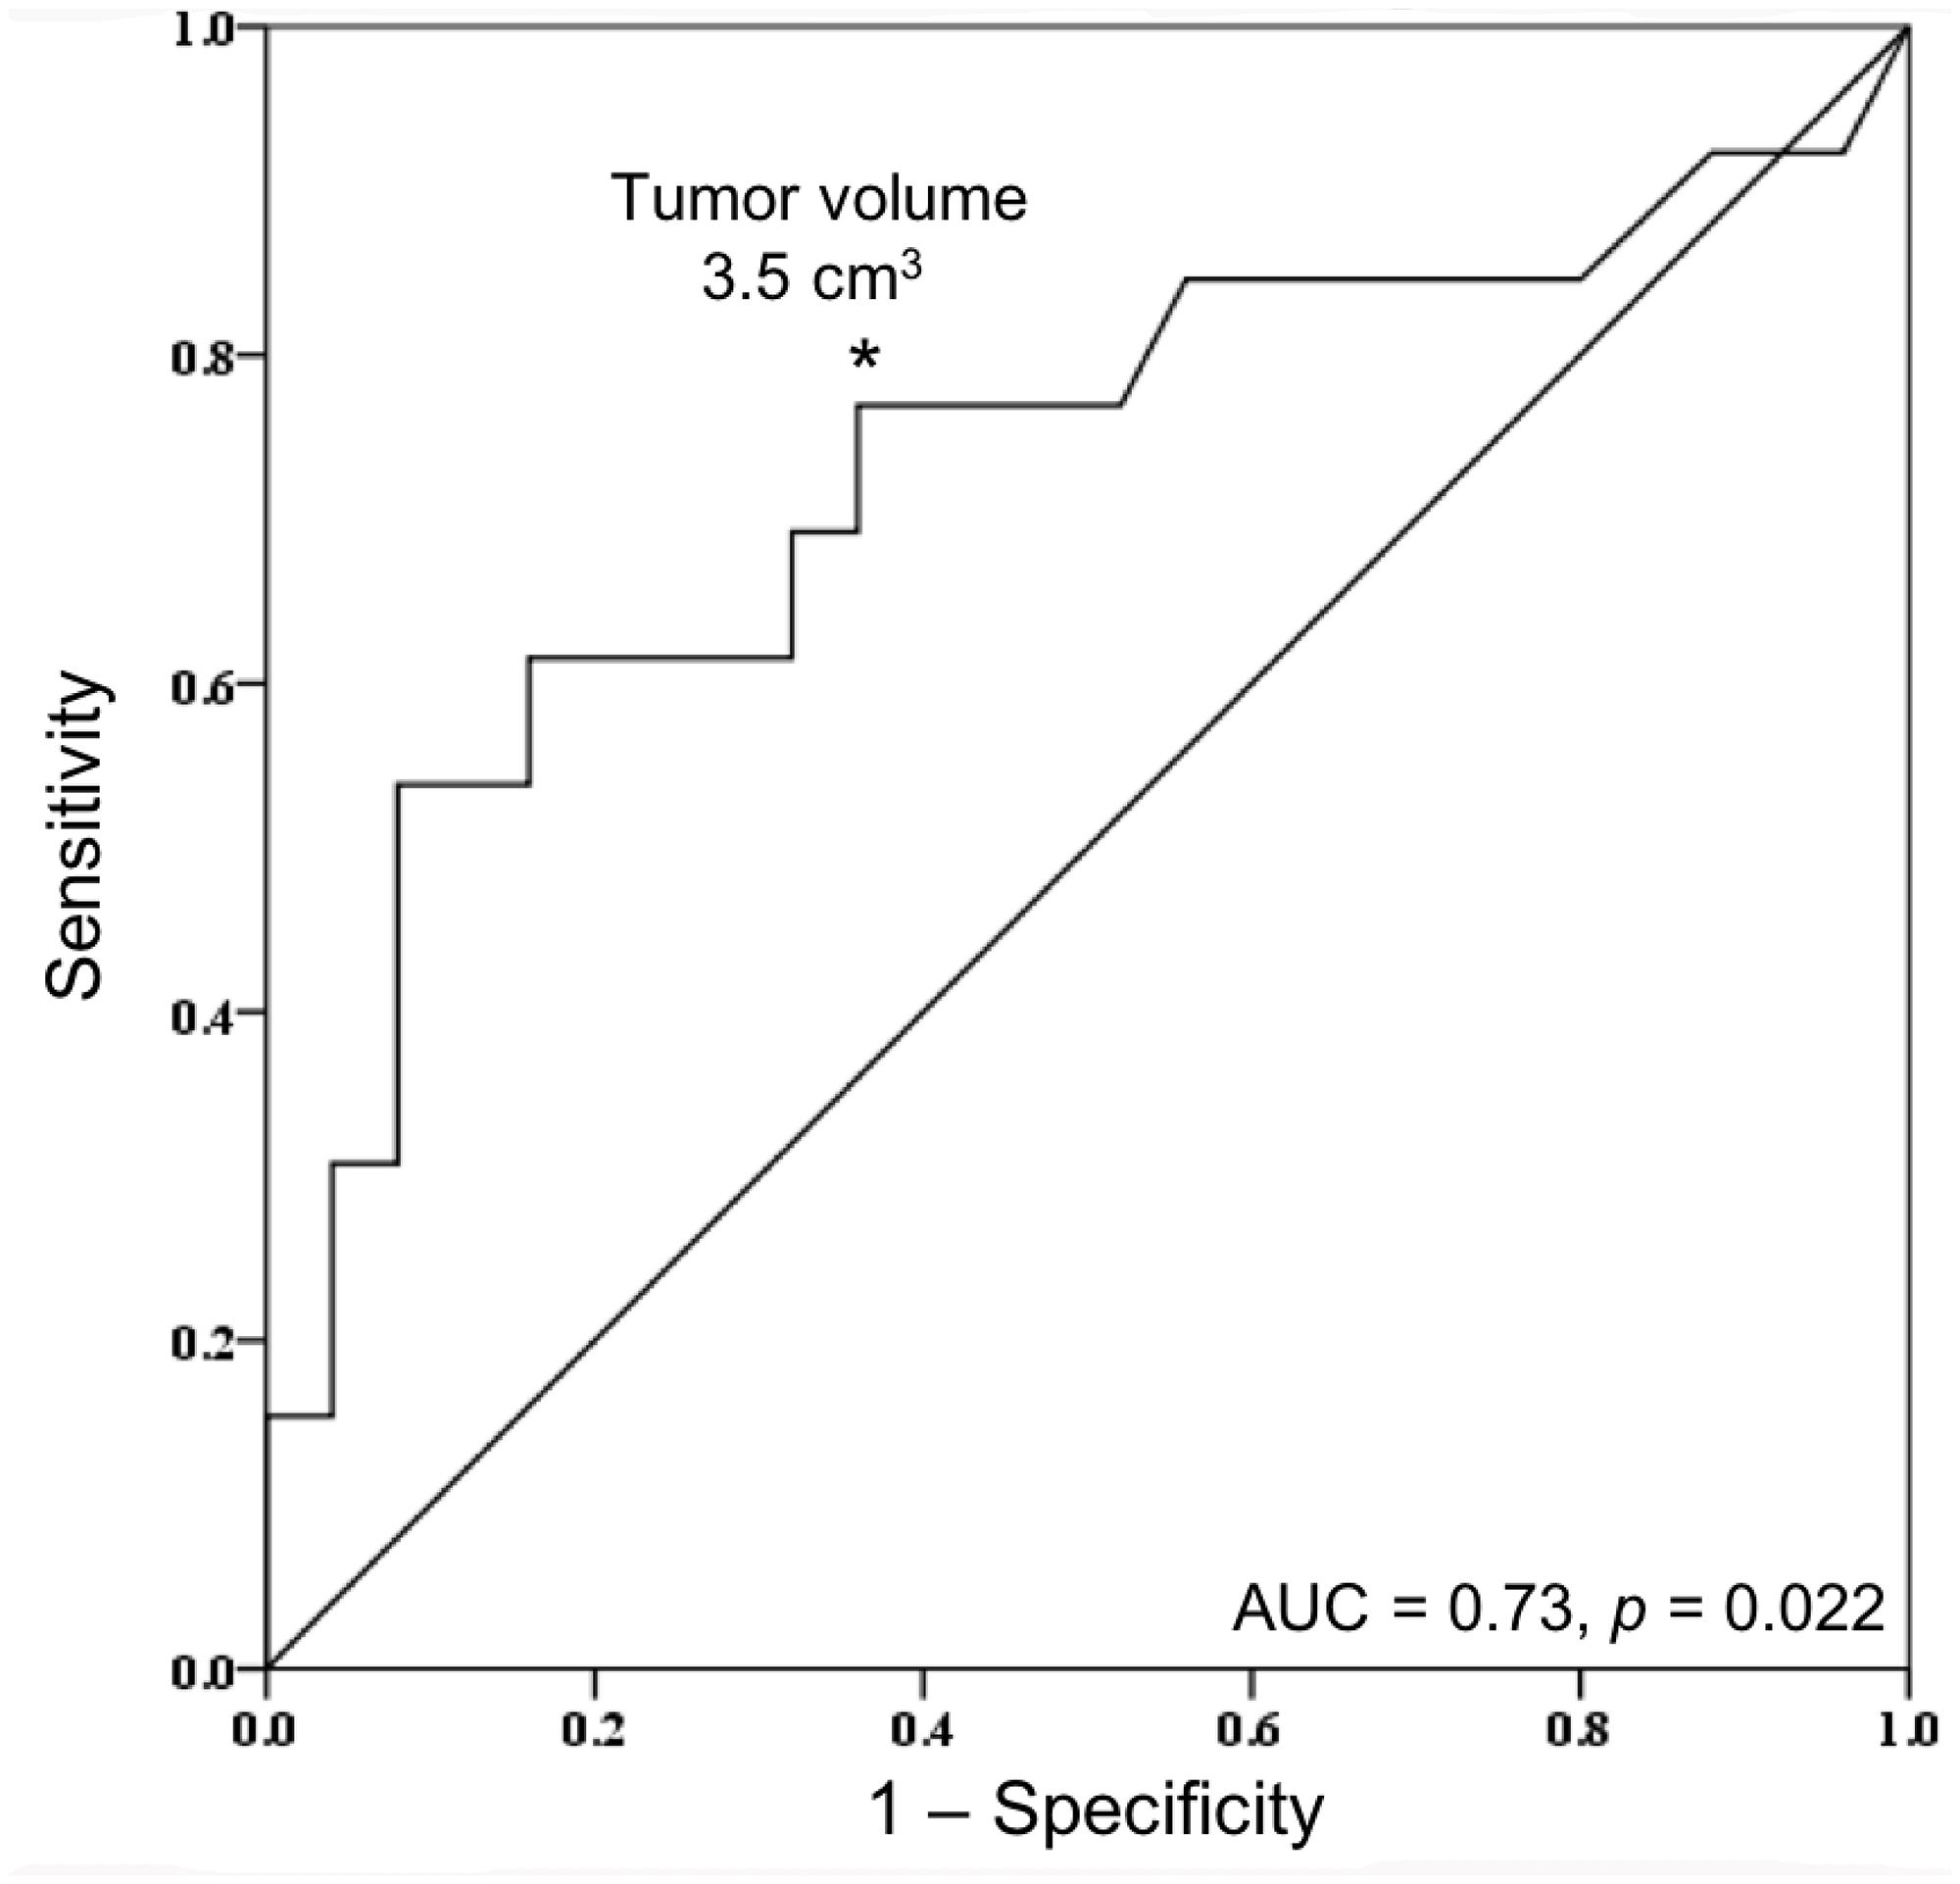 Receiver operating characteristic (ROC) curve of tumor volume by NF2 mutational status.